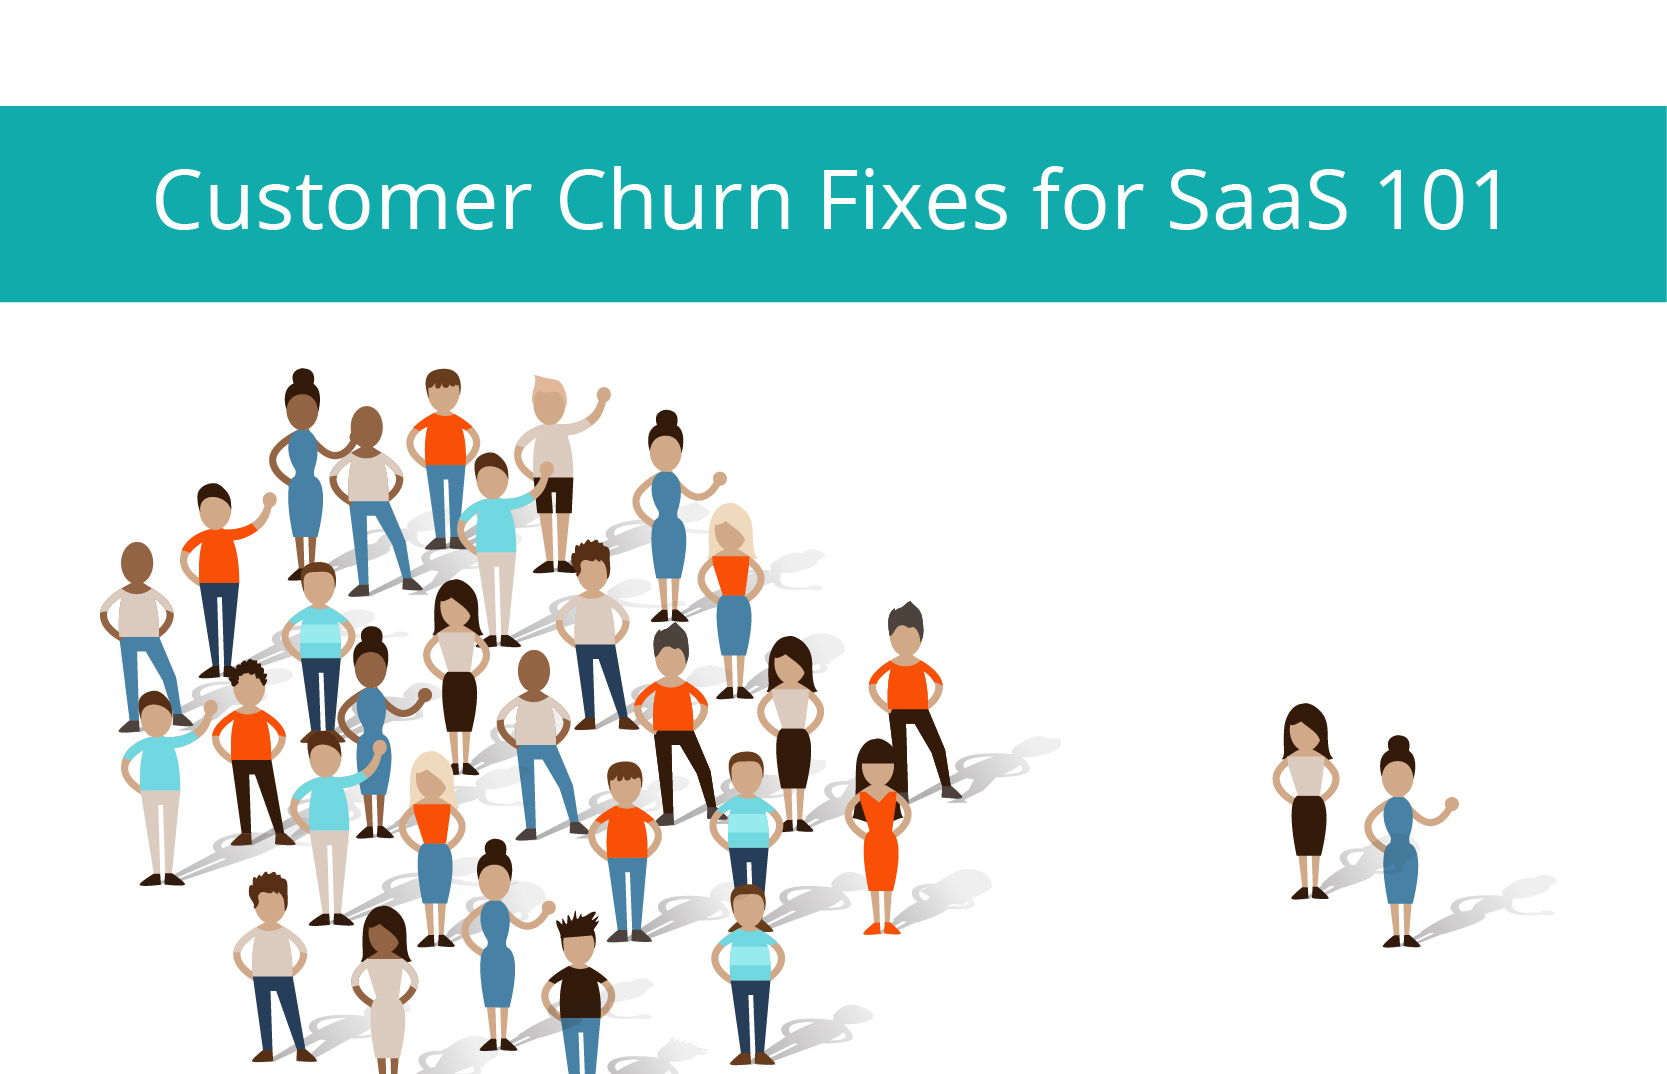 Customer Churn Fixes for SaaS 101